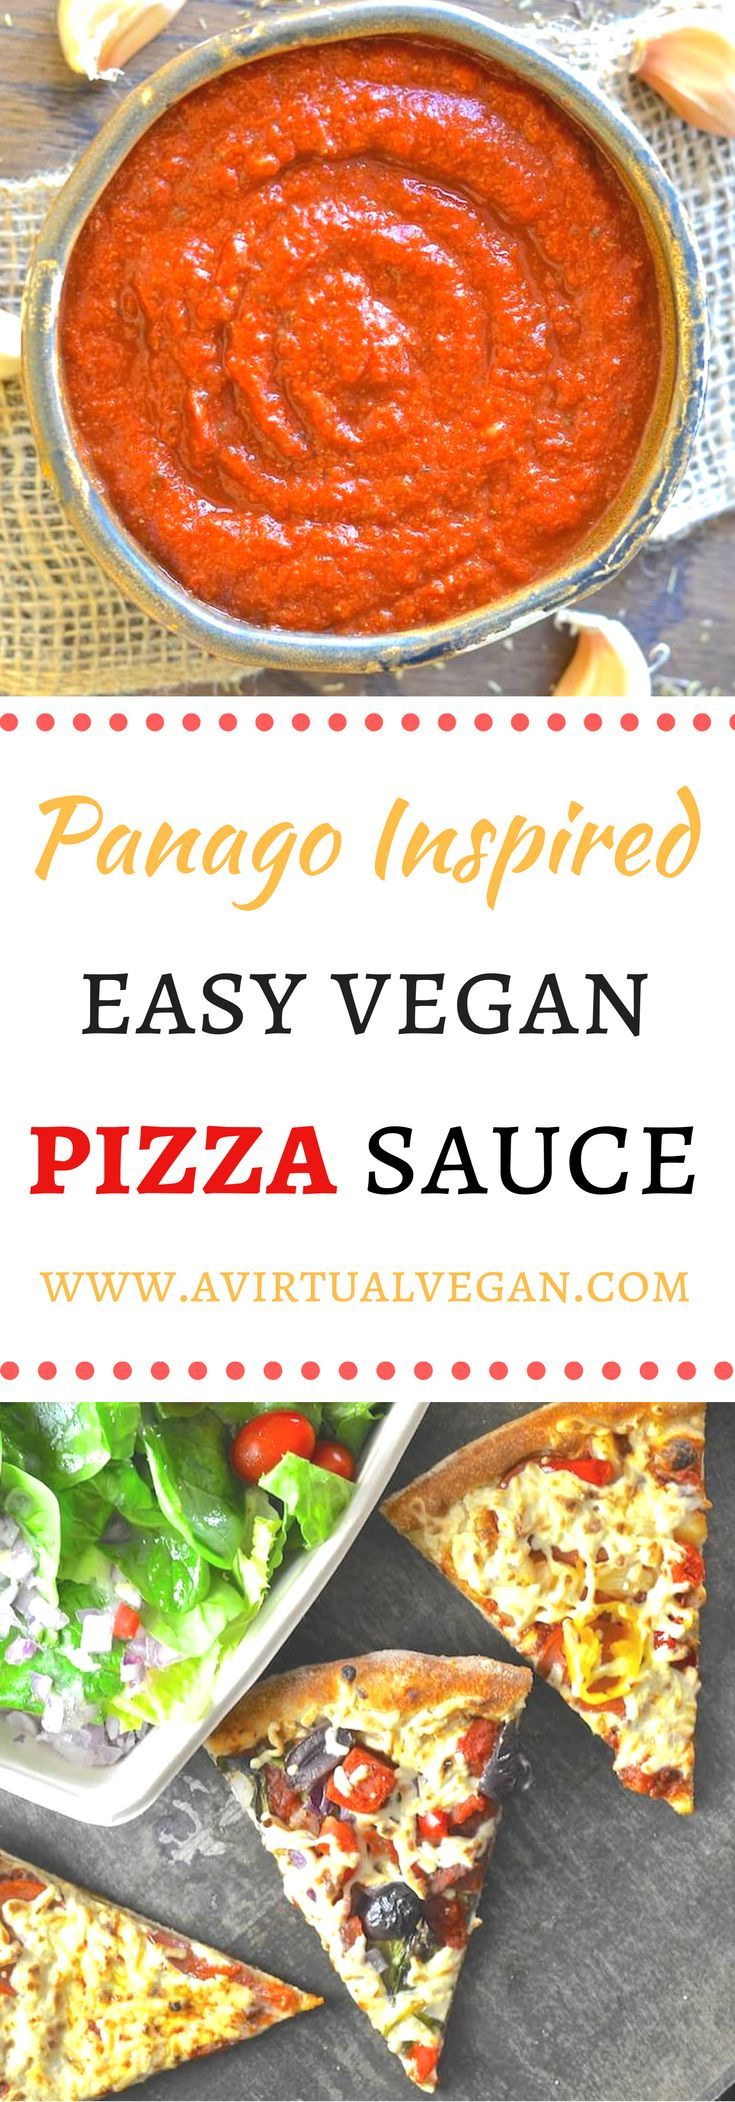 A hearty & rich oil- free vegan pizza sauce with an intense full flavour. Plus read my review of Panago Pizza's vegan offerings and enter my giveaway to win a Panago gift voucher! via @avirtualvegan